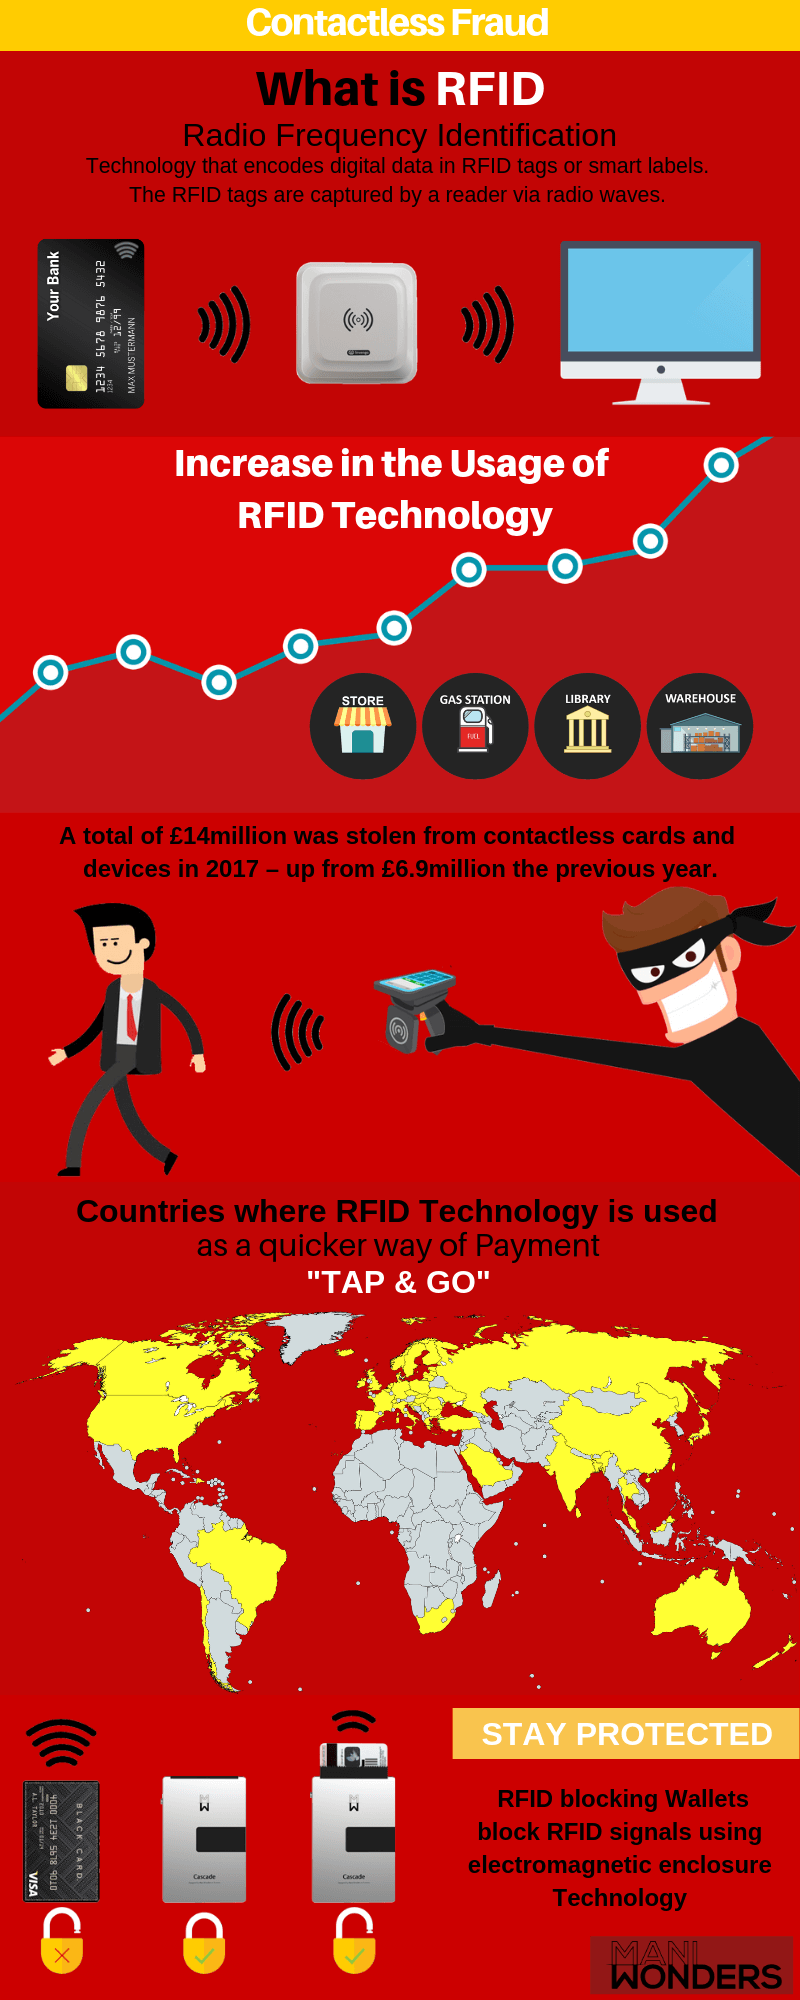 Contactless RFID Fraud And Ways To Stay Protected